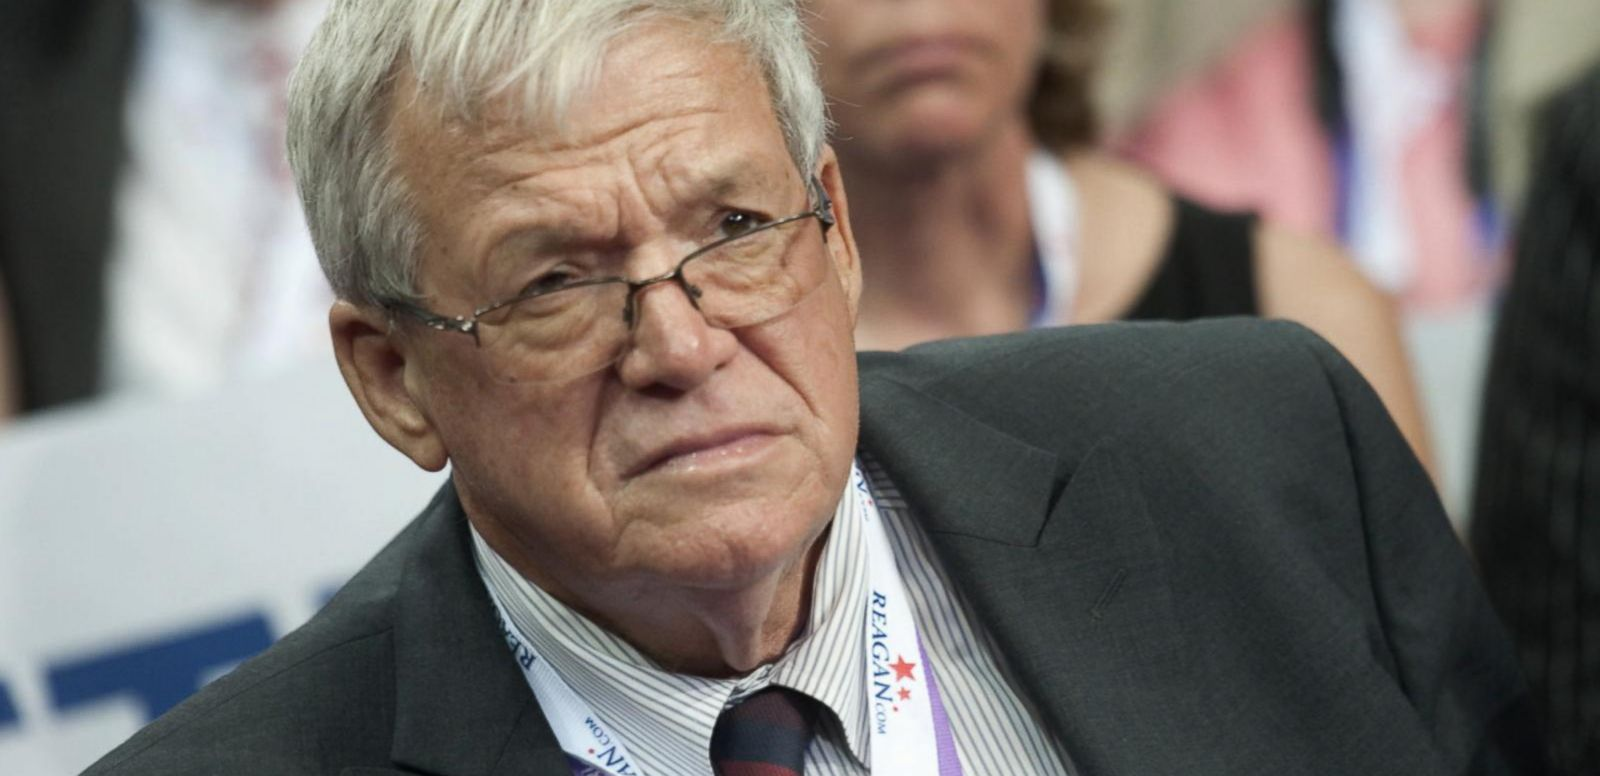 VIDEO: Former Speaker of the House Dennis Hastert Indicted